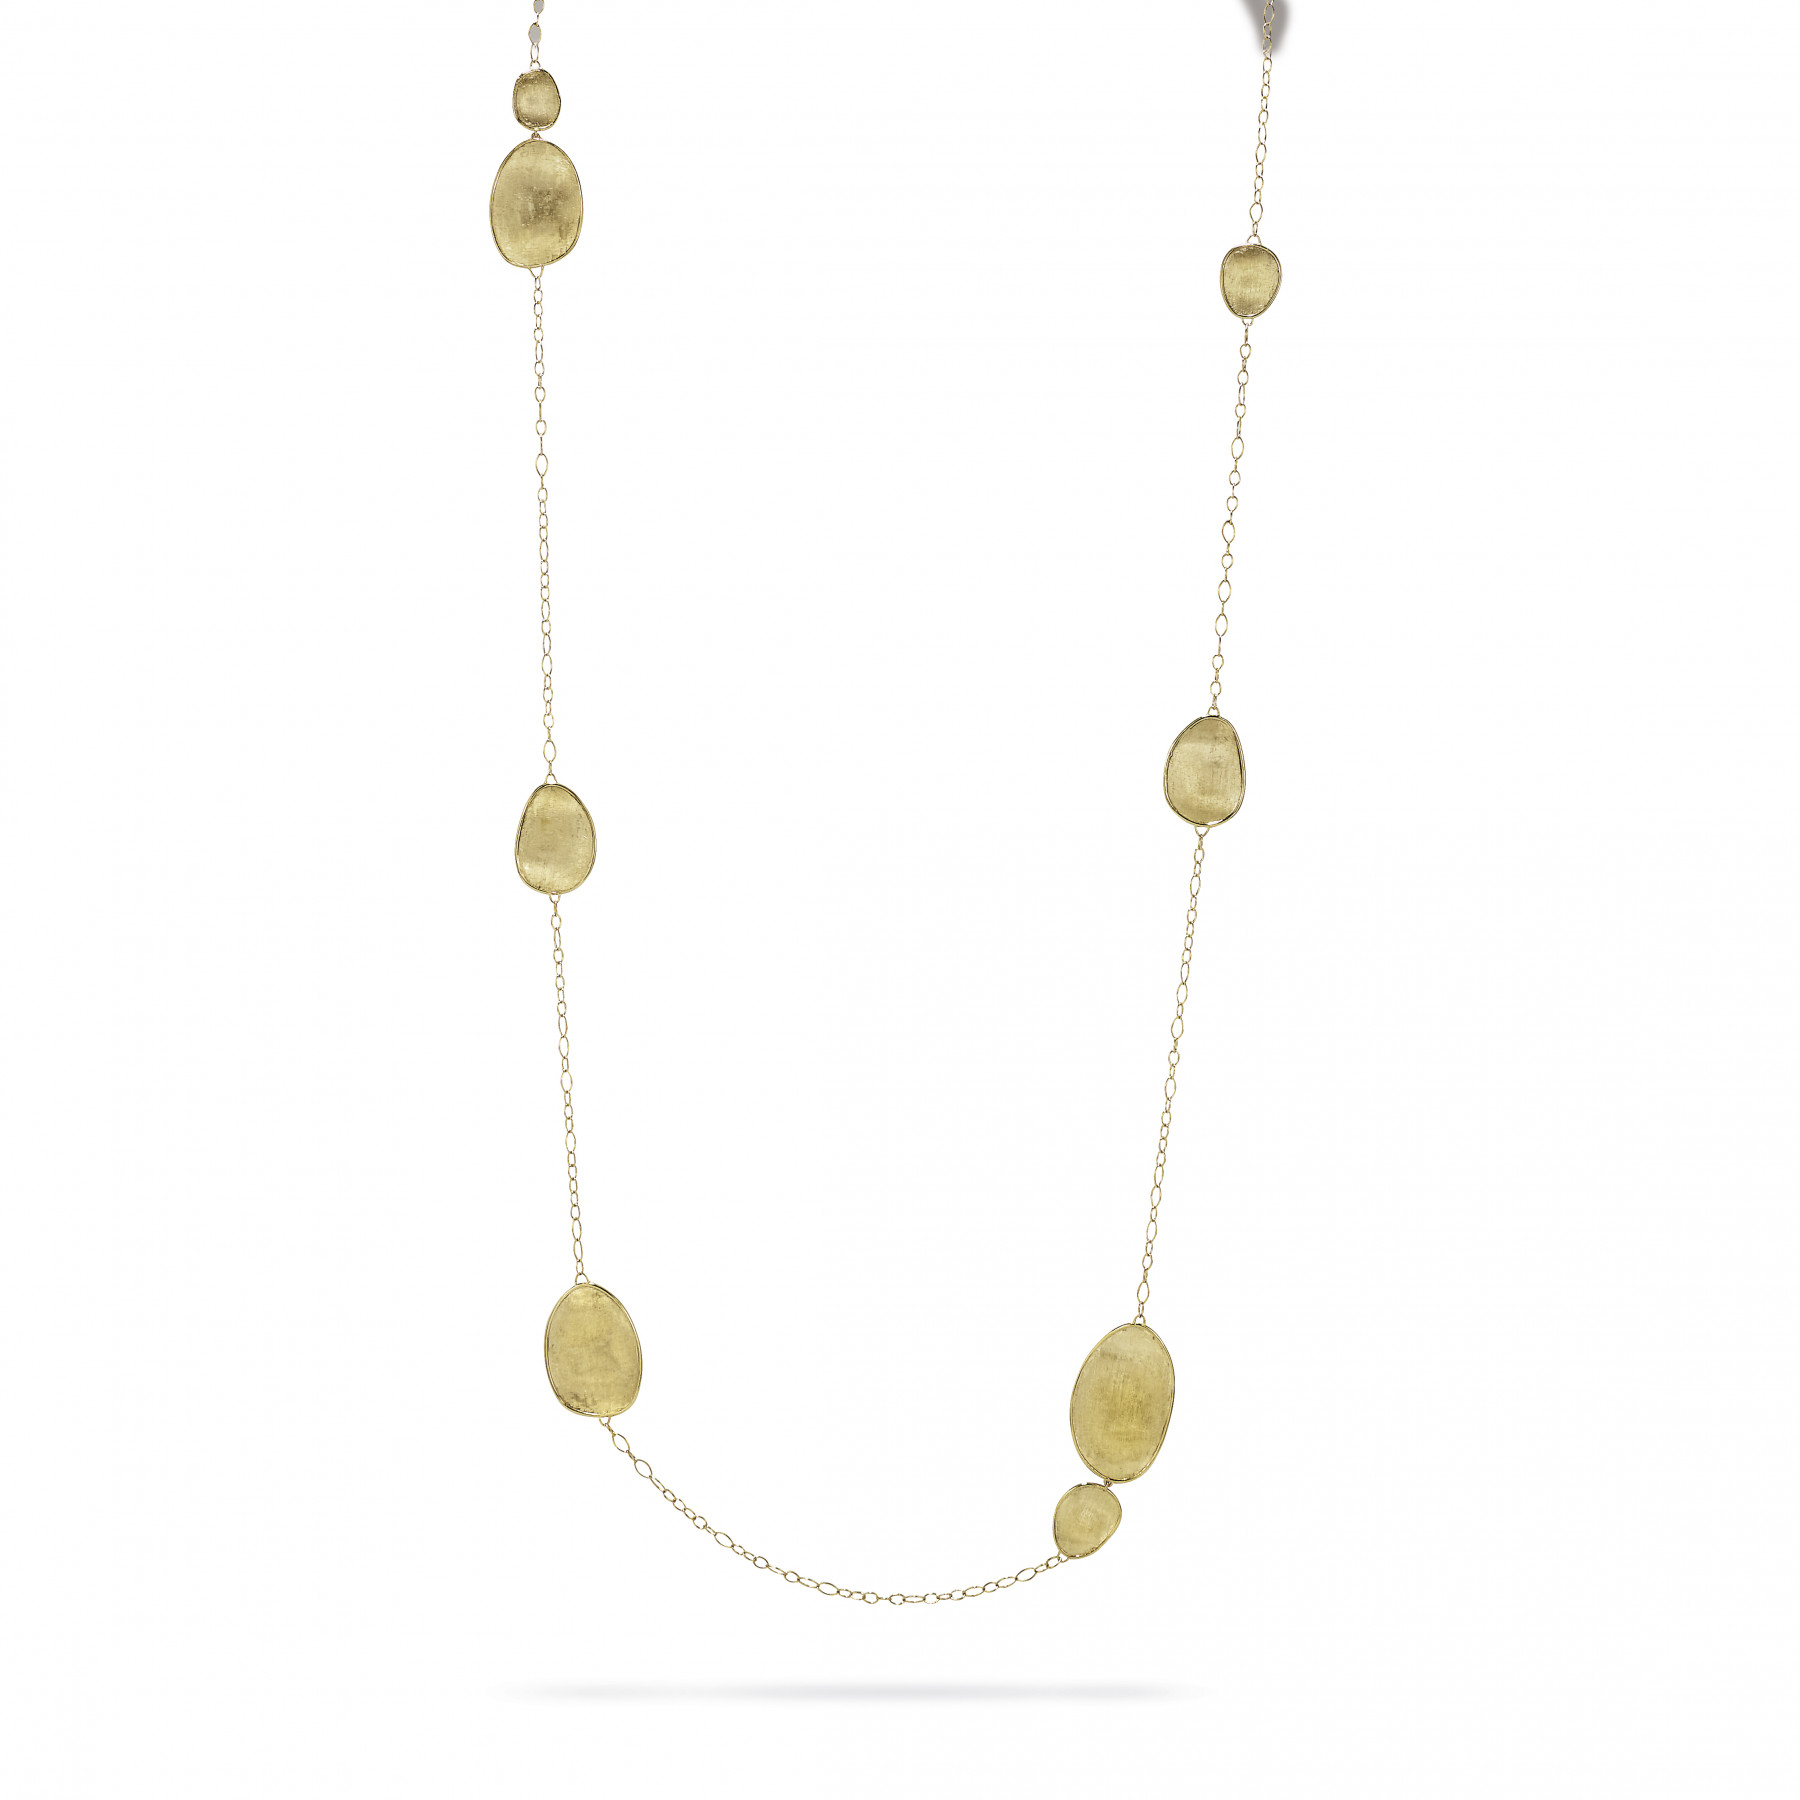 "Marco Bicego Lunaria 18kt Yellow Gold 39.25"" Necklace"